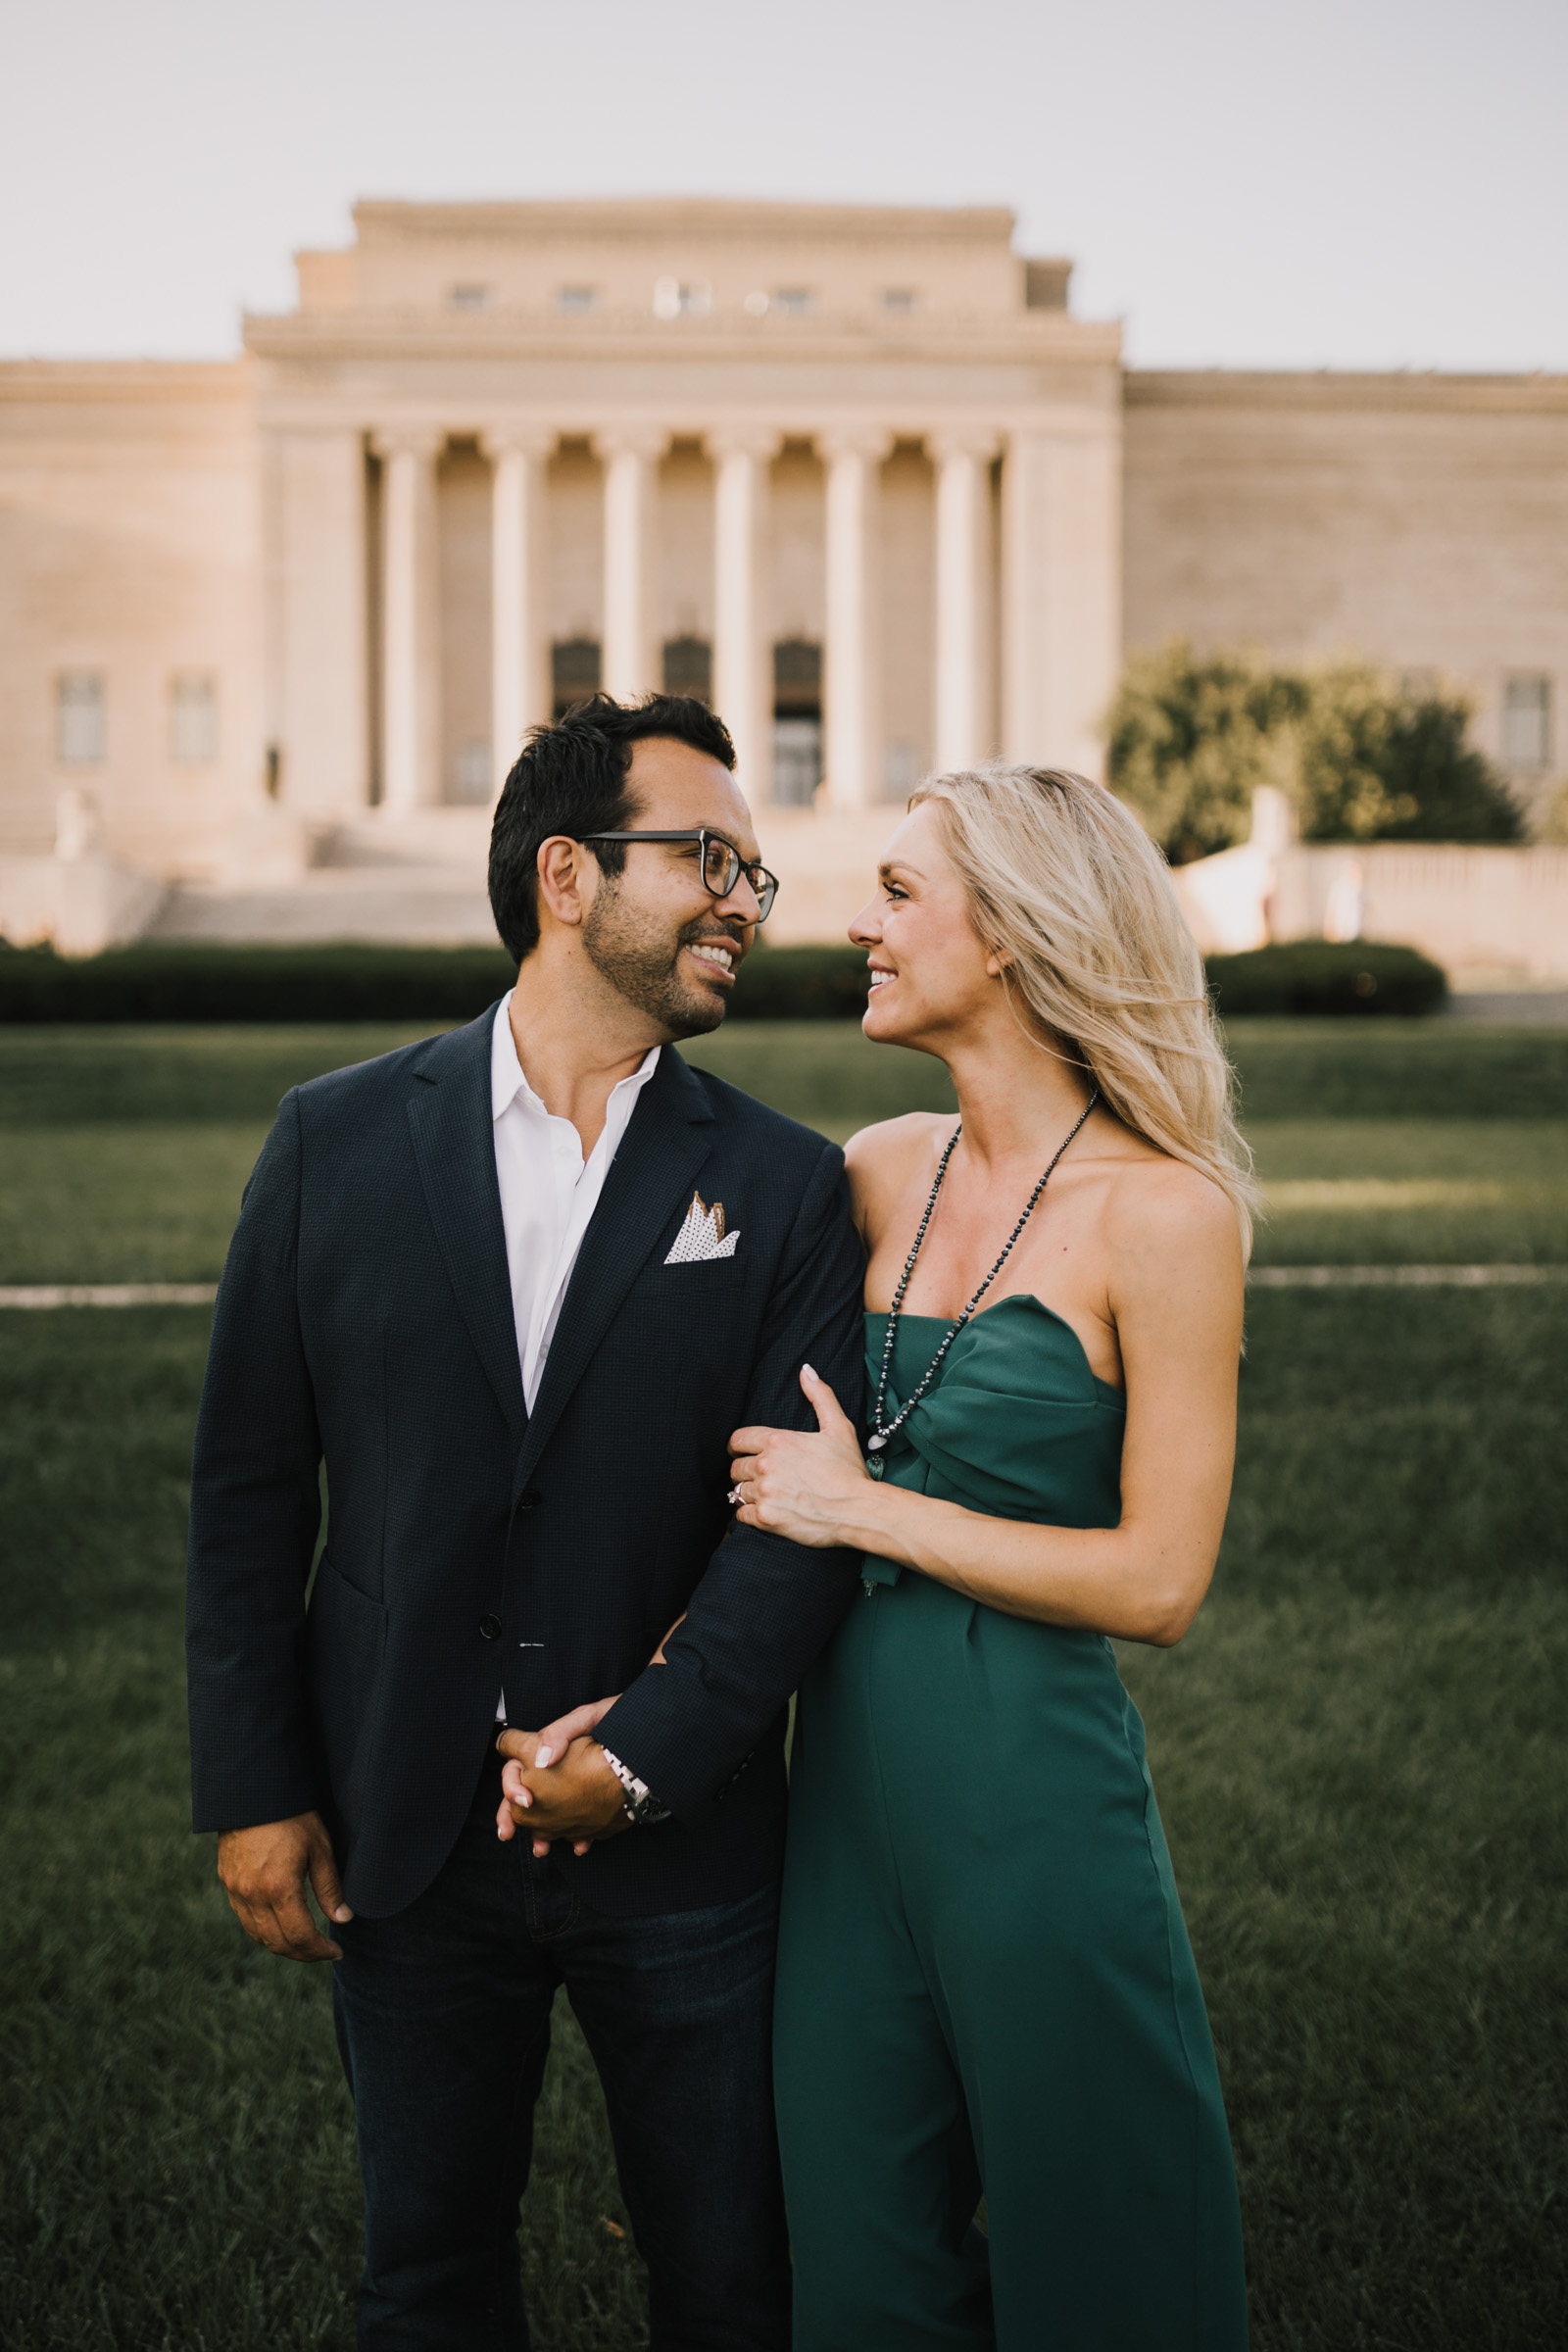 alyssa barletter photography how he asked proposal nelson atkins museum kansas city missouri she said yes-22.jpg